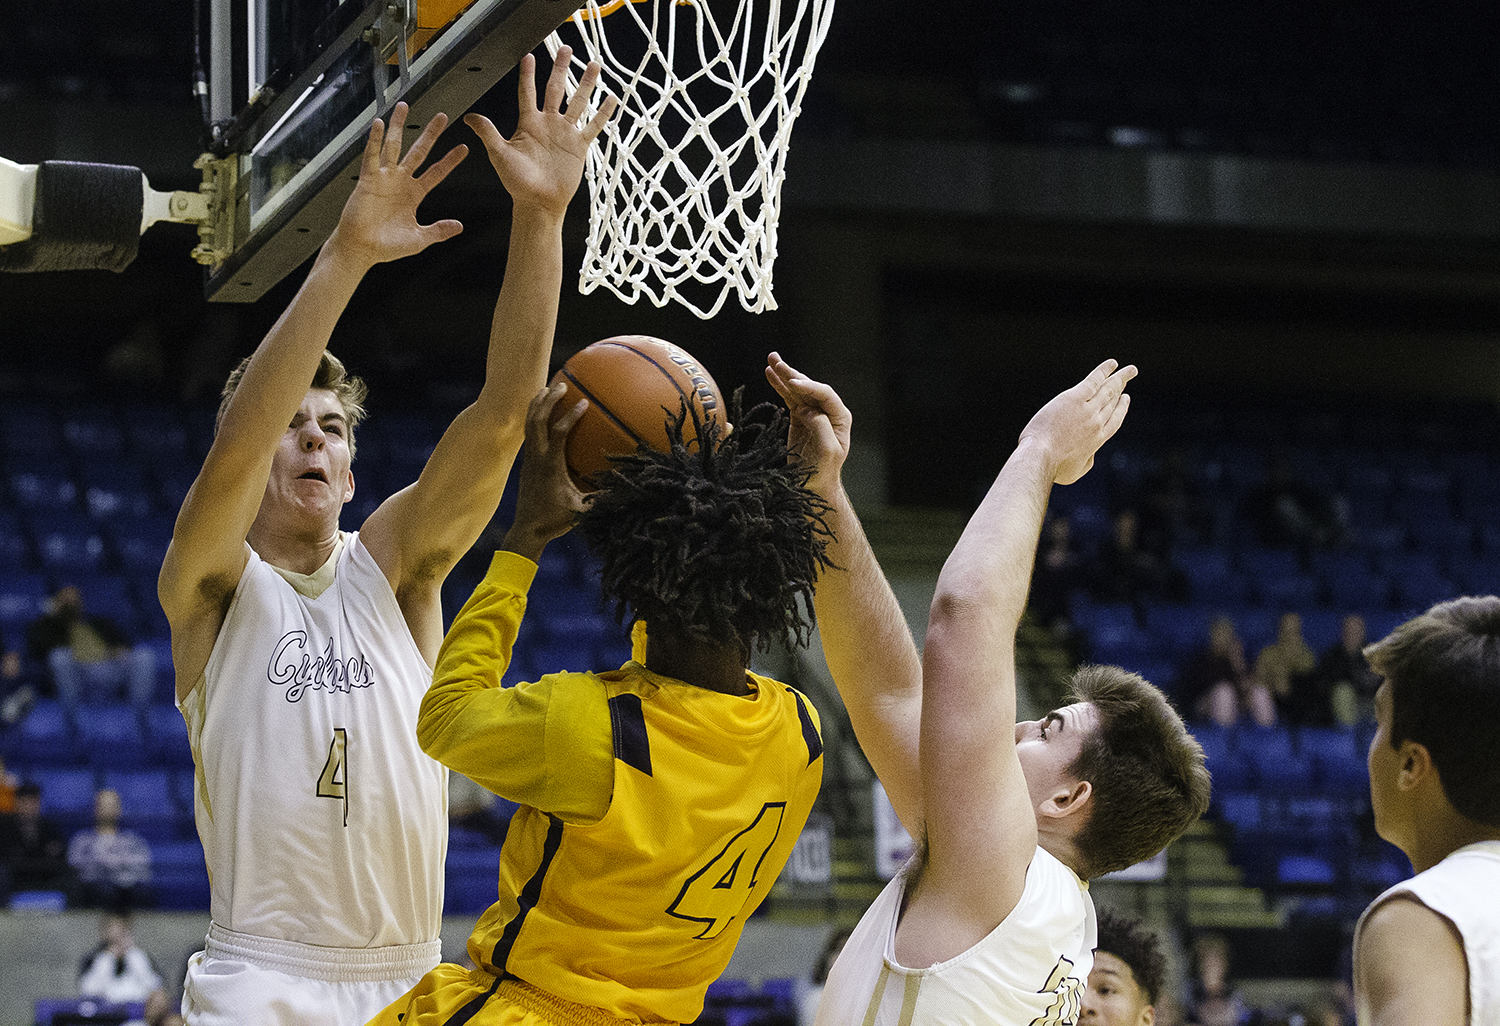 Sacred Heart-Griffin's Charlie Hamilton and Nick Broekerduring pressure Southeast's Terrion Murdix as he takes a shot in the Boys City Tournament at the Bank of Springfield Center Thursday, Jan. 18, 2018. [Ted Schurter/The State Journal-Register]